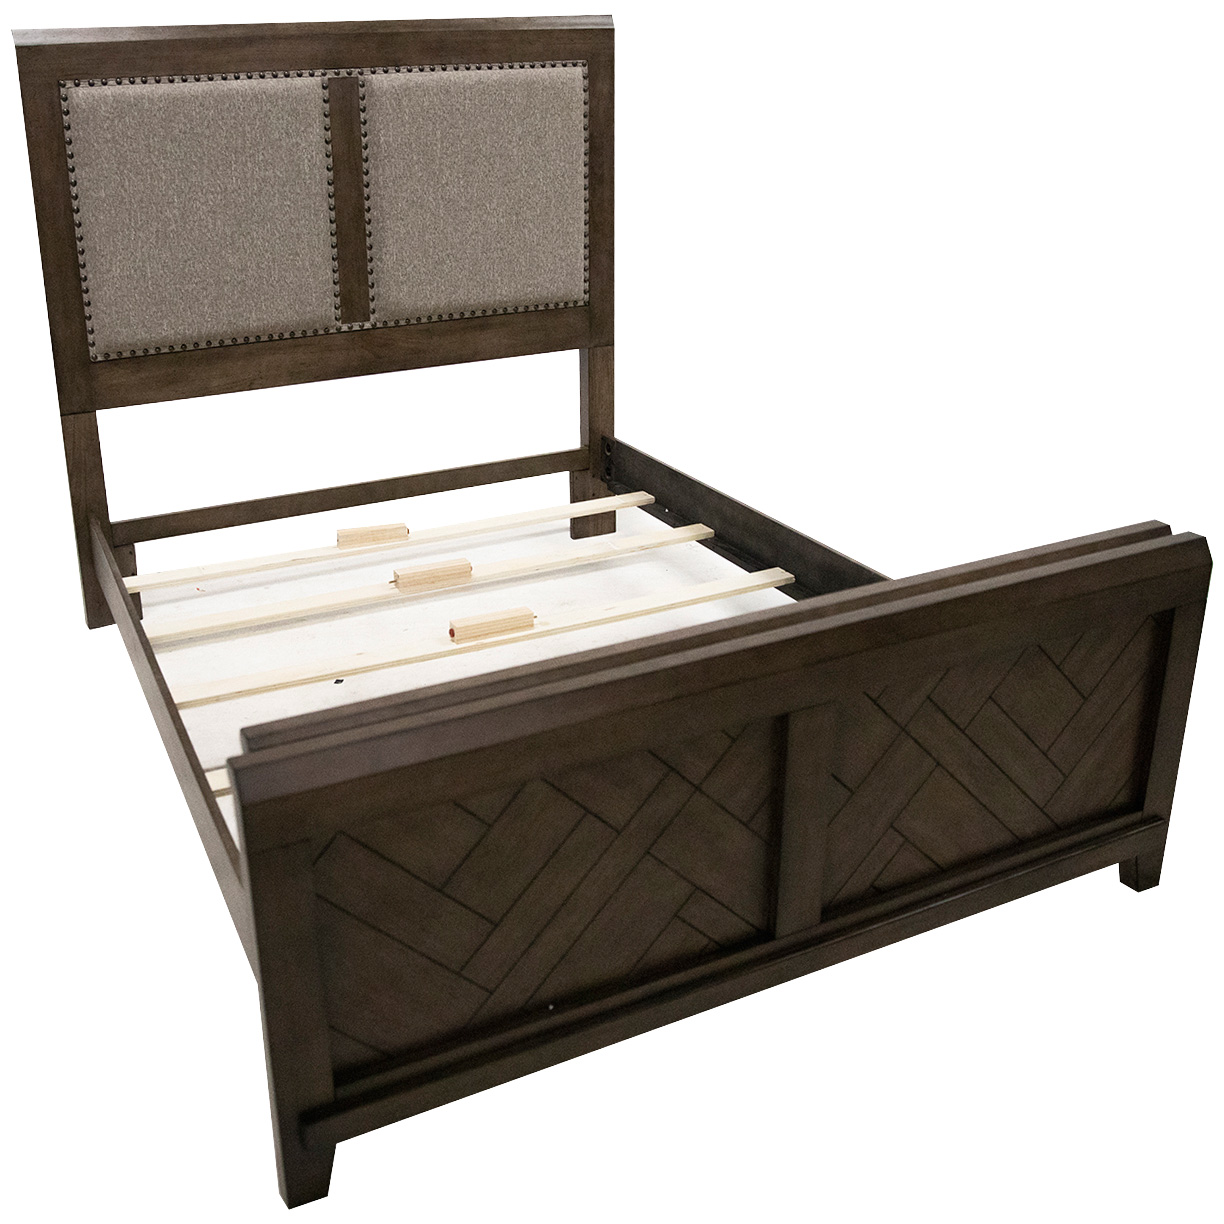 Davis Direct | Patches Gray Brown Queen Upholstered Panel Bed